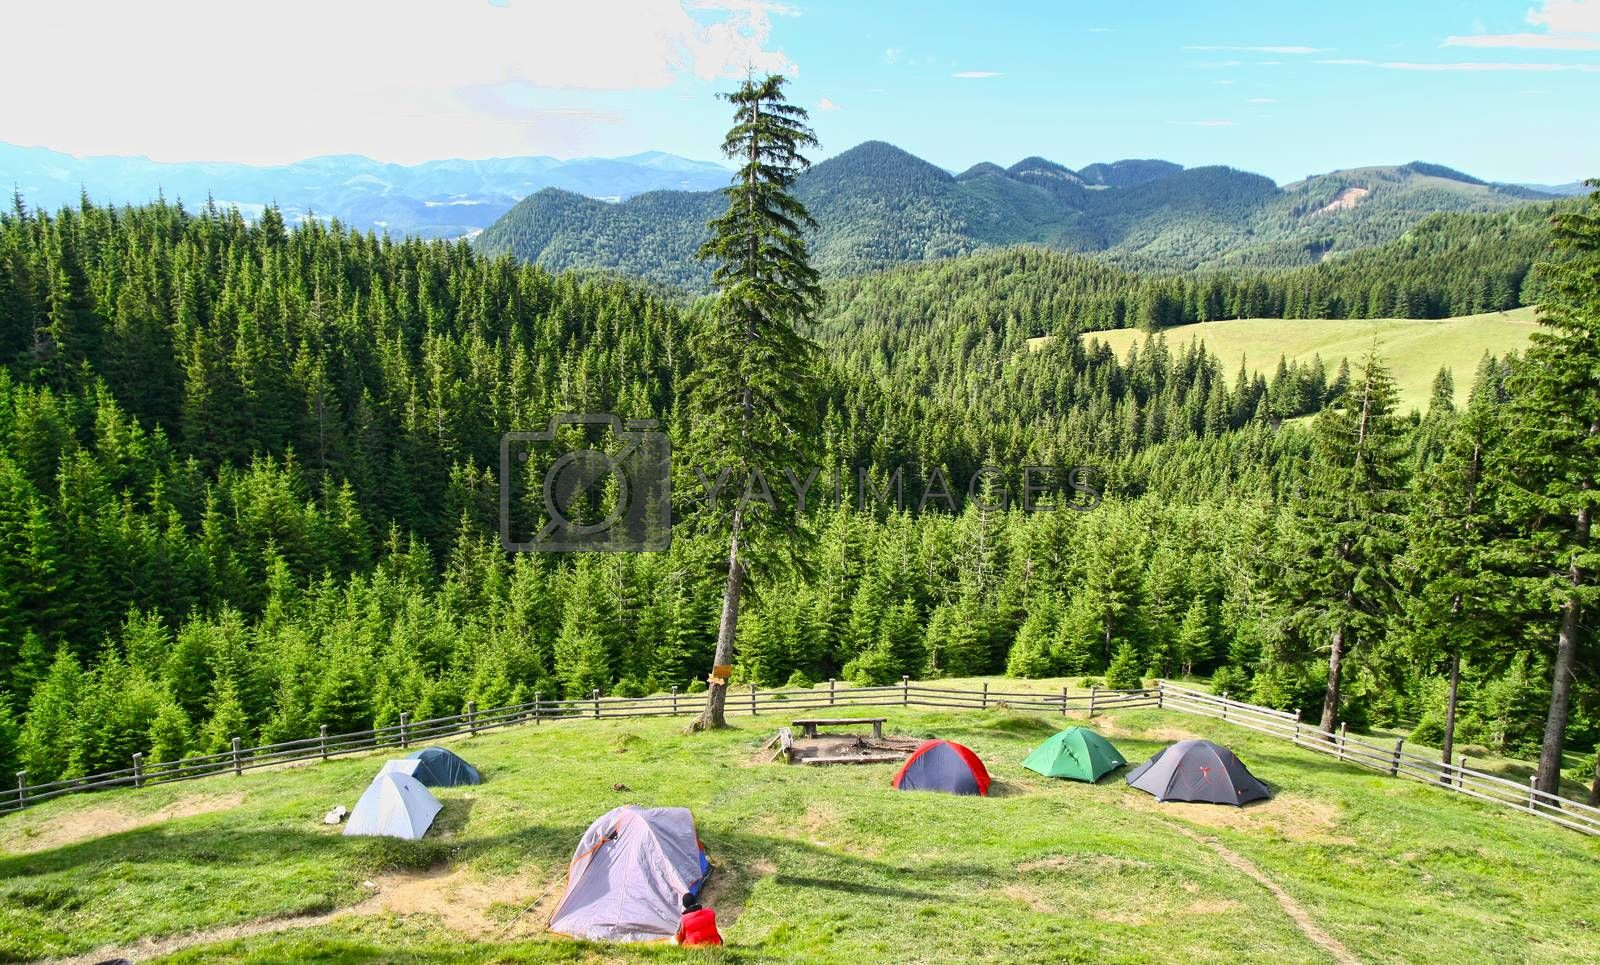 Forest camping in the mountains. Beautiful landscape in front of tents